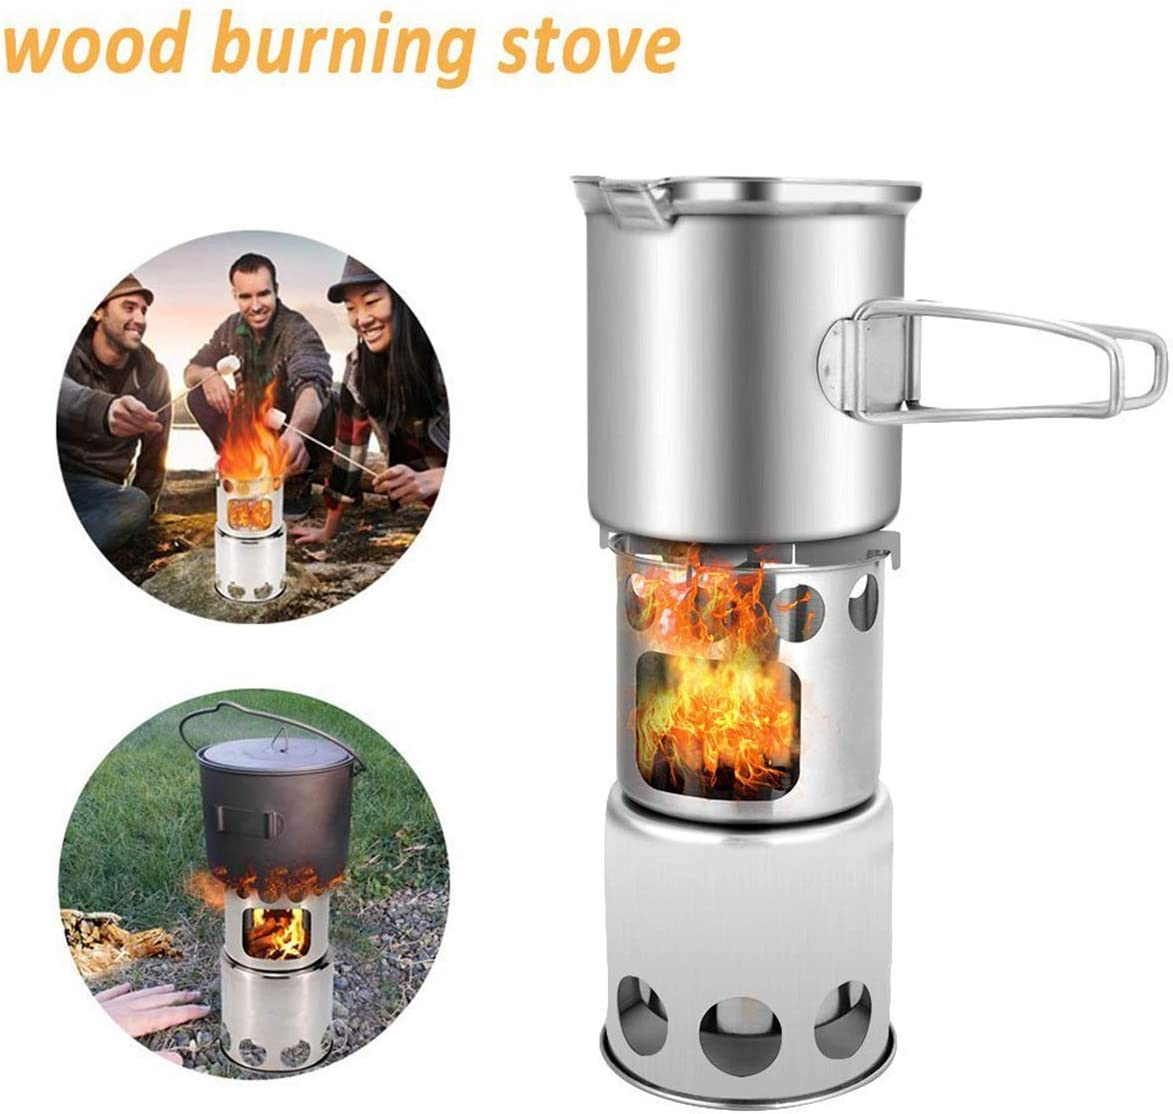 Color : Wood stove Jinxuny 304 Stainless Steel Camping Cookware Set with Wood Stove /& Pot Outdoor Camping Hiking Backpacking Cooking Picnic Cookware Mess Kit for 1-2 Adult